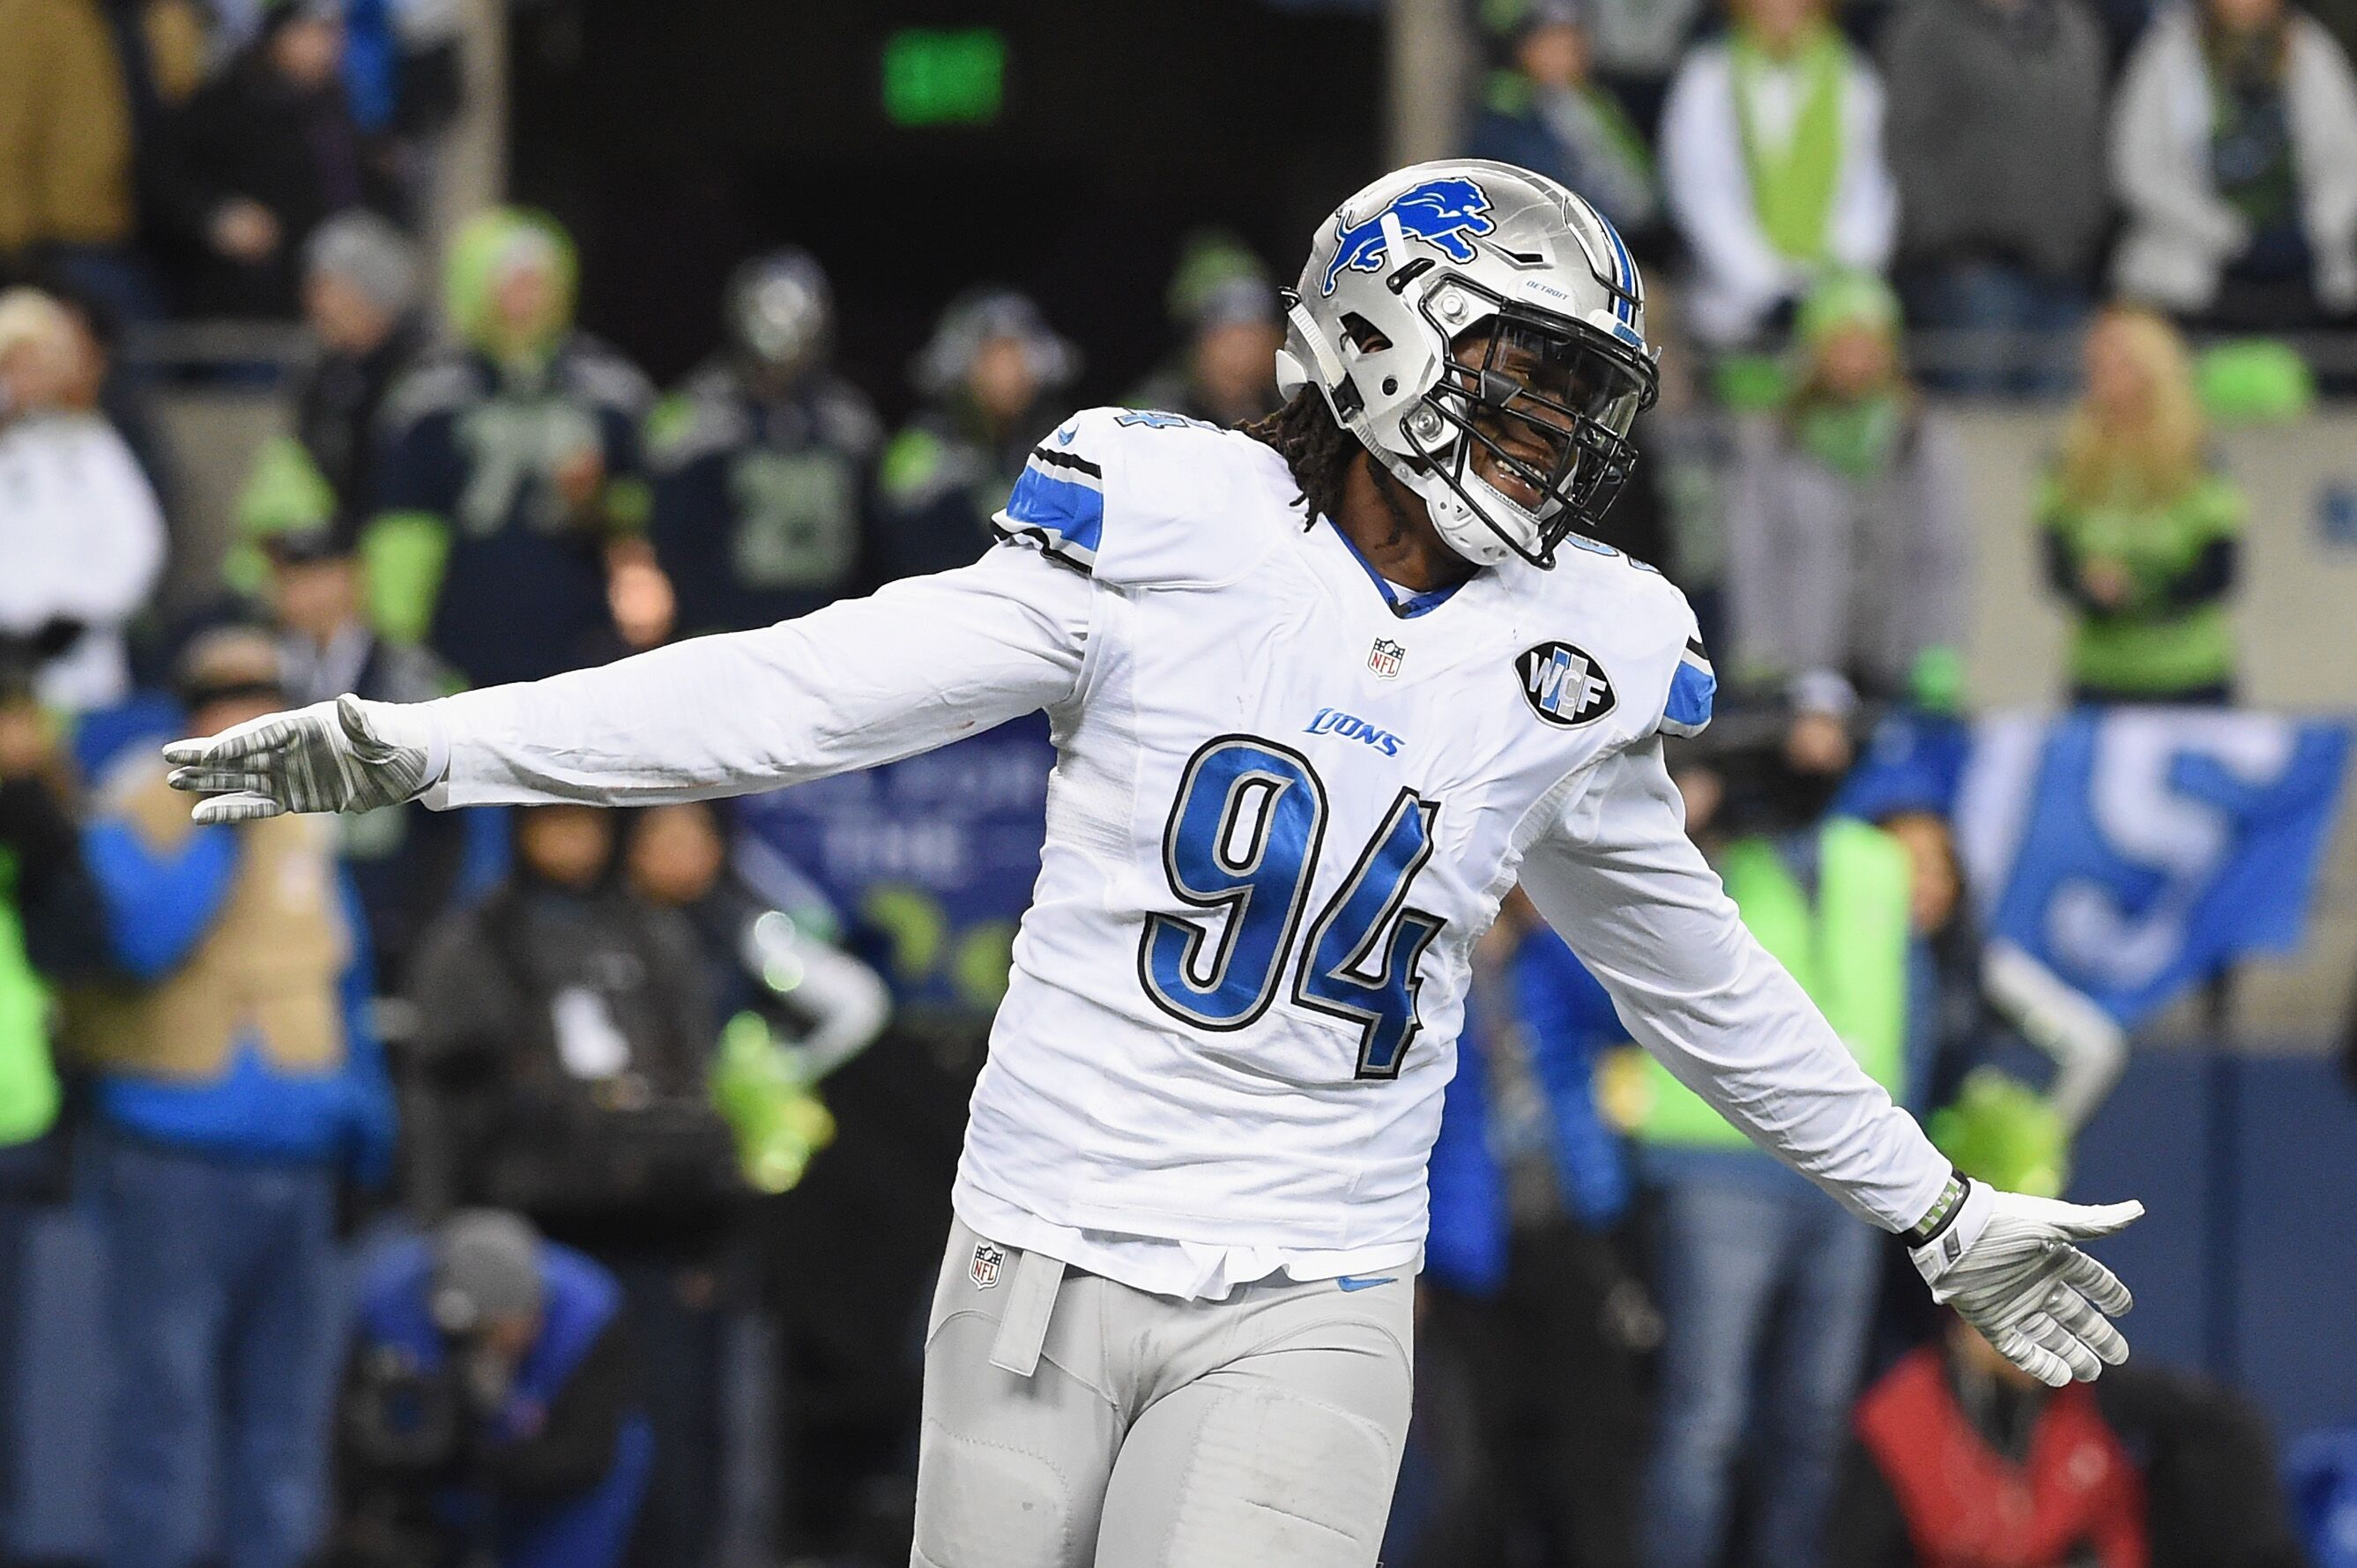 New England Patriots should trade for up ing free agent Ziggy Ansah